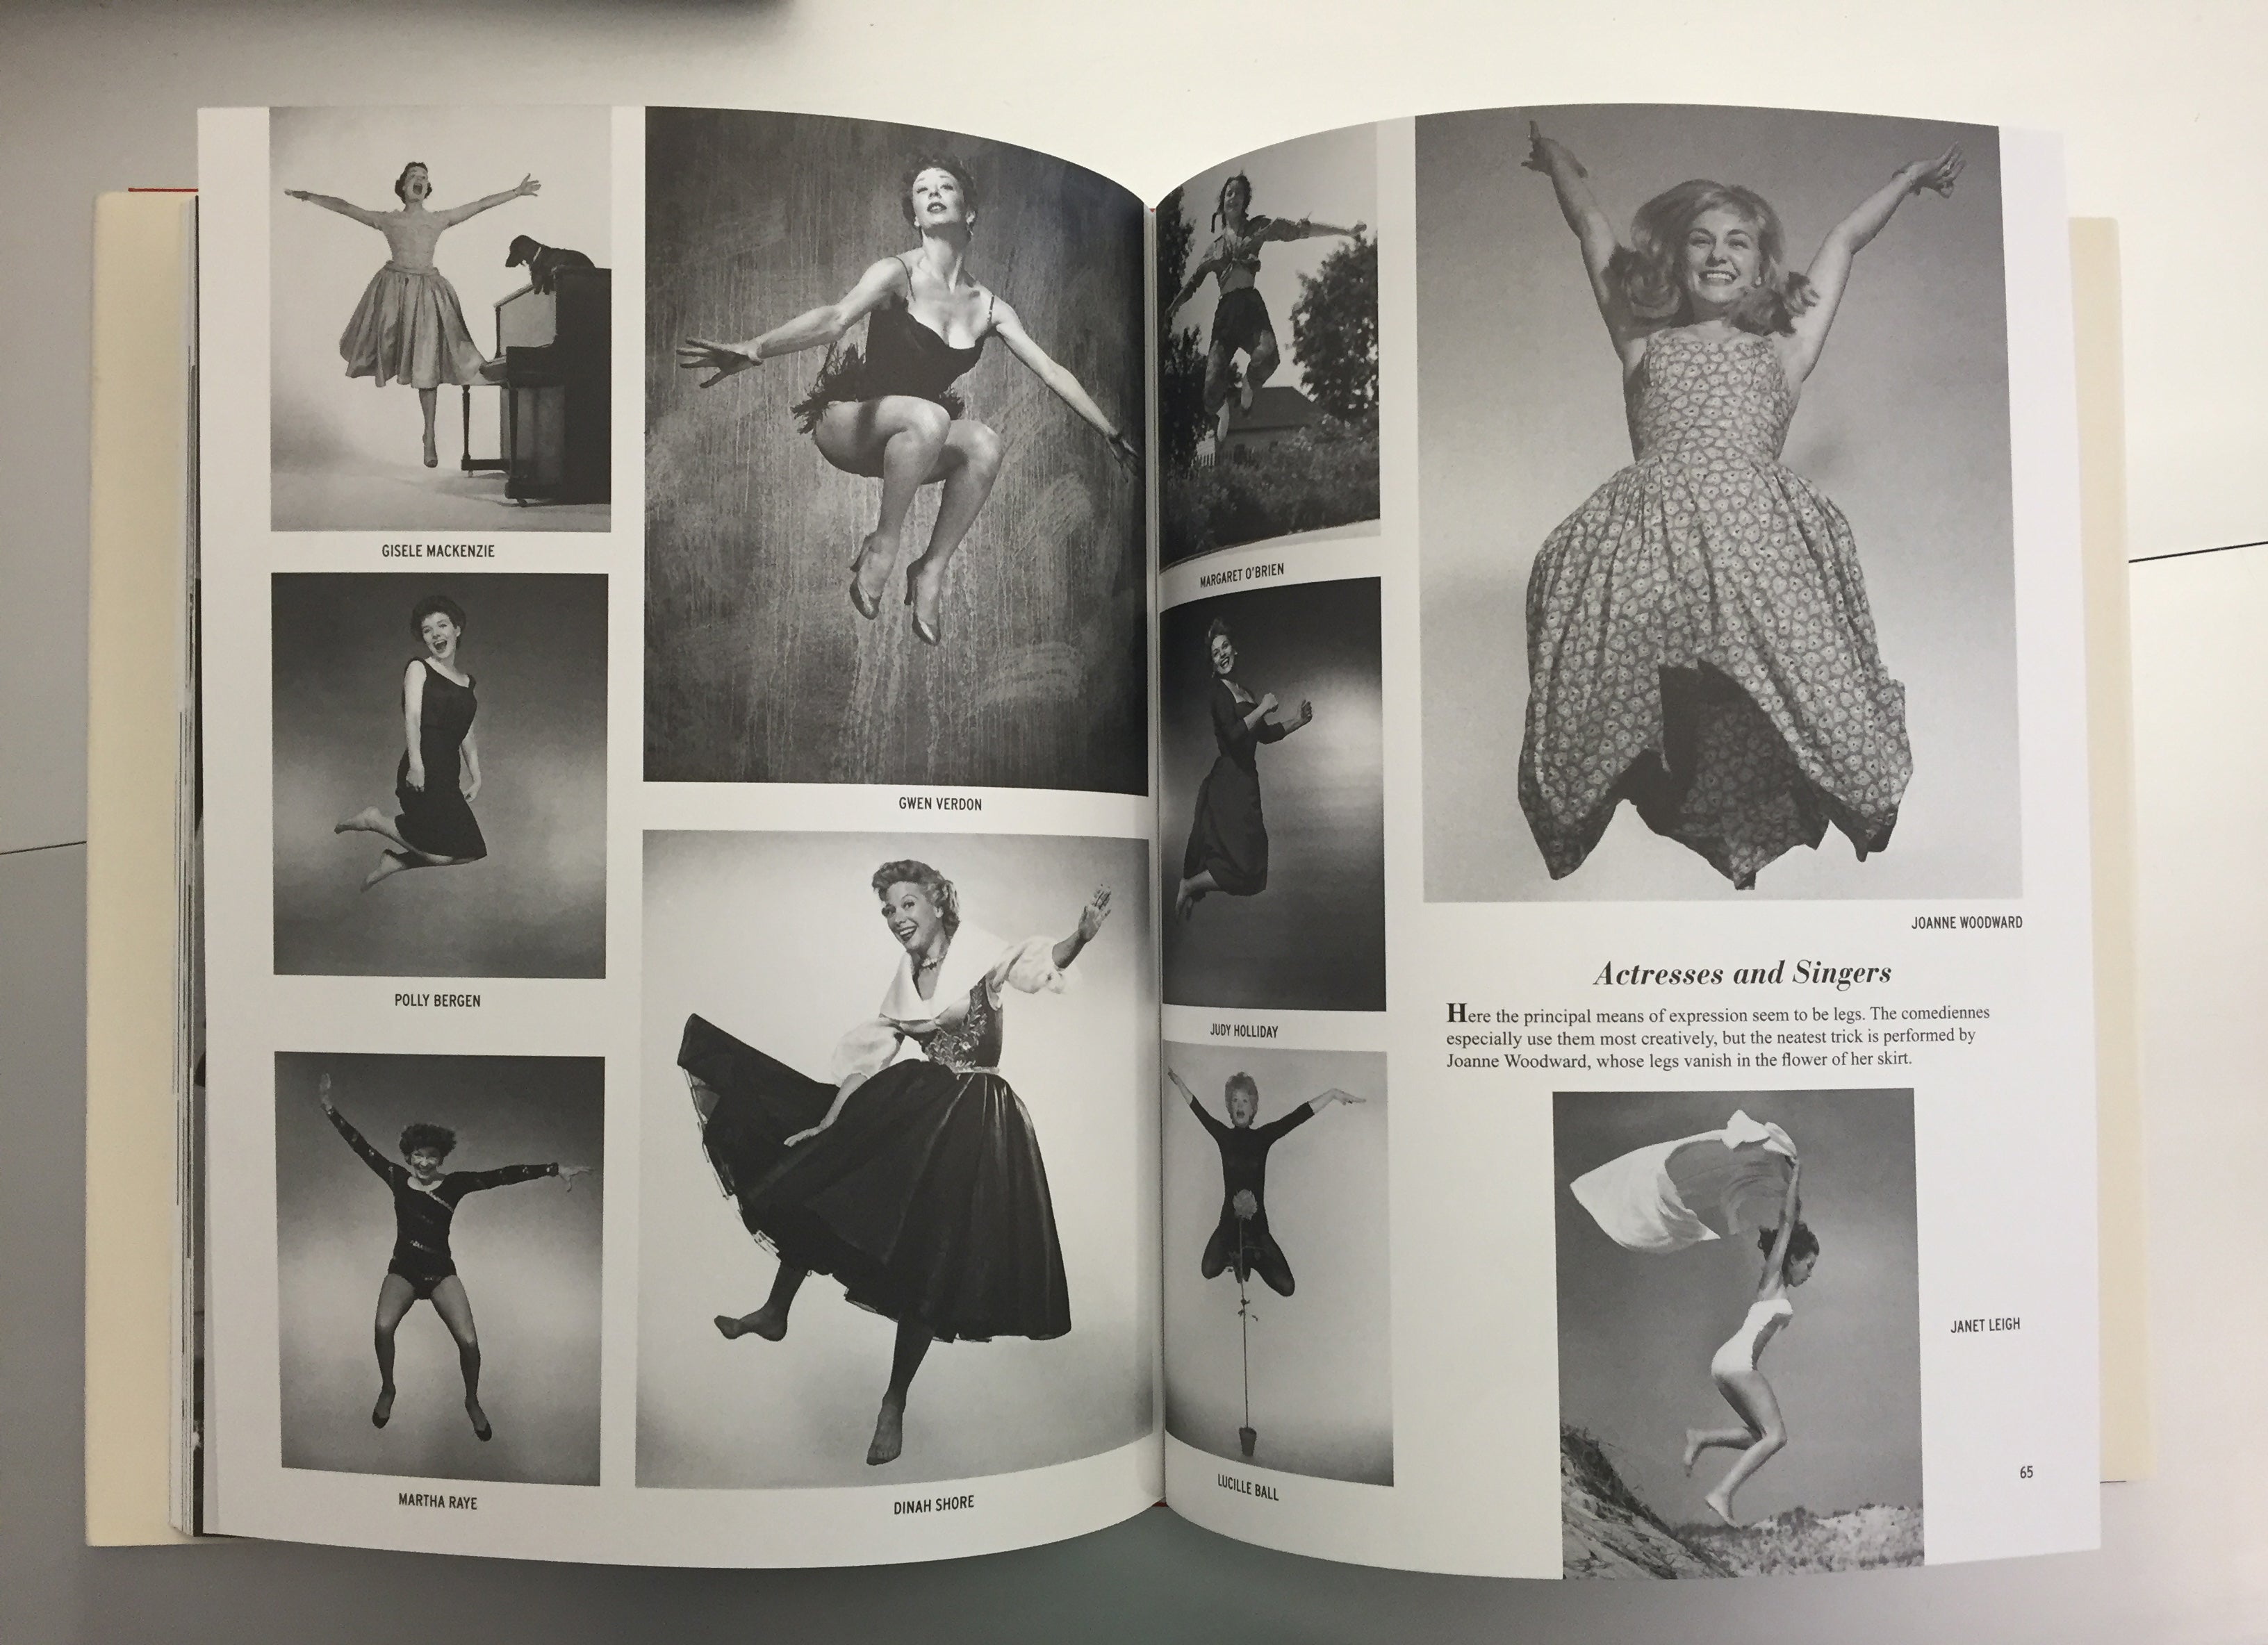 Actresses & Singers by Philippe Halsman